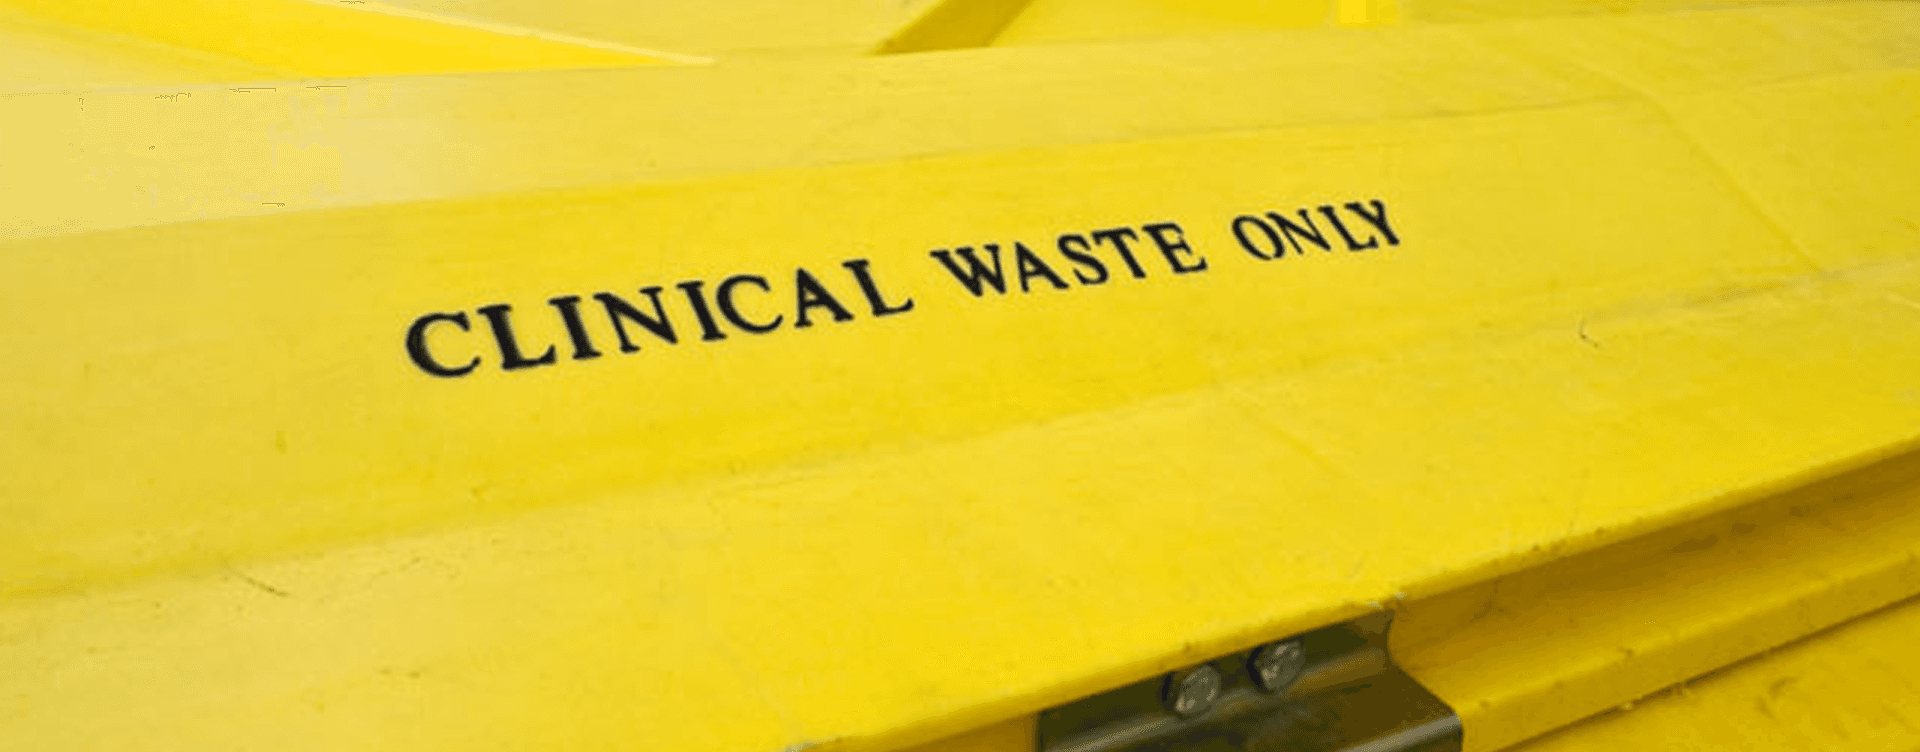 CLINICAL WASTE ONLY